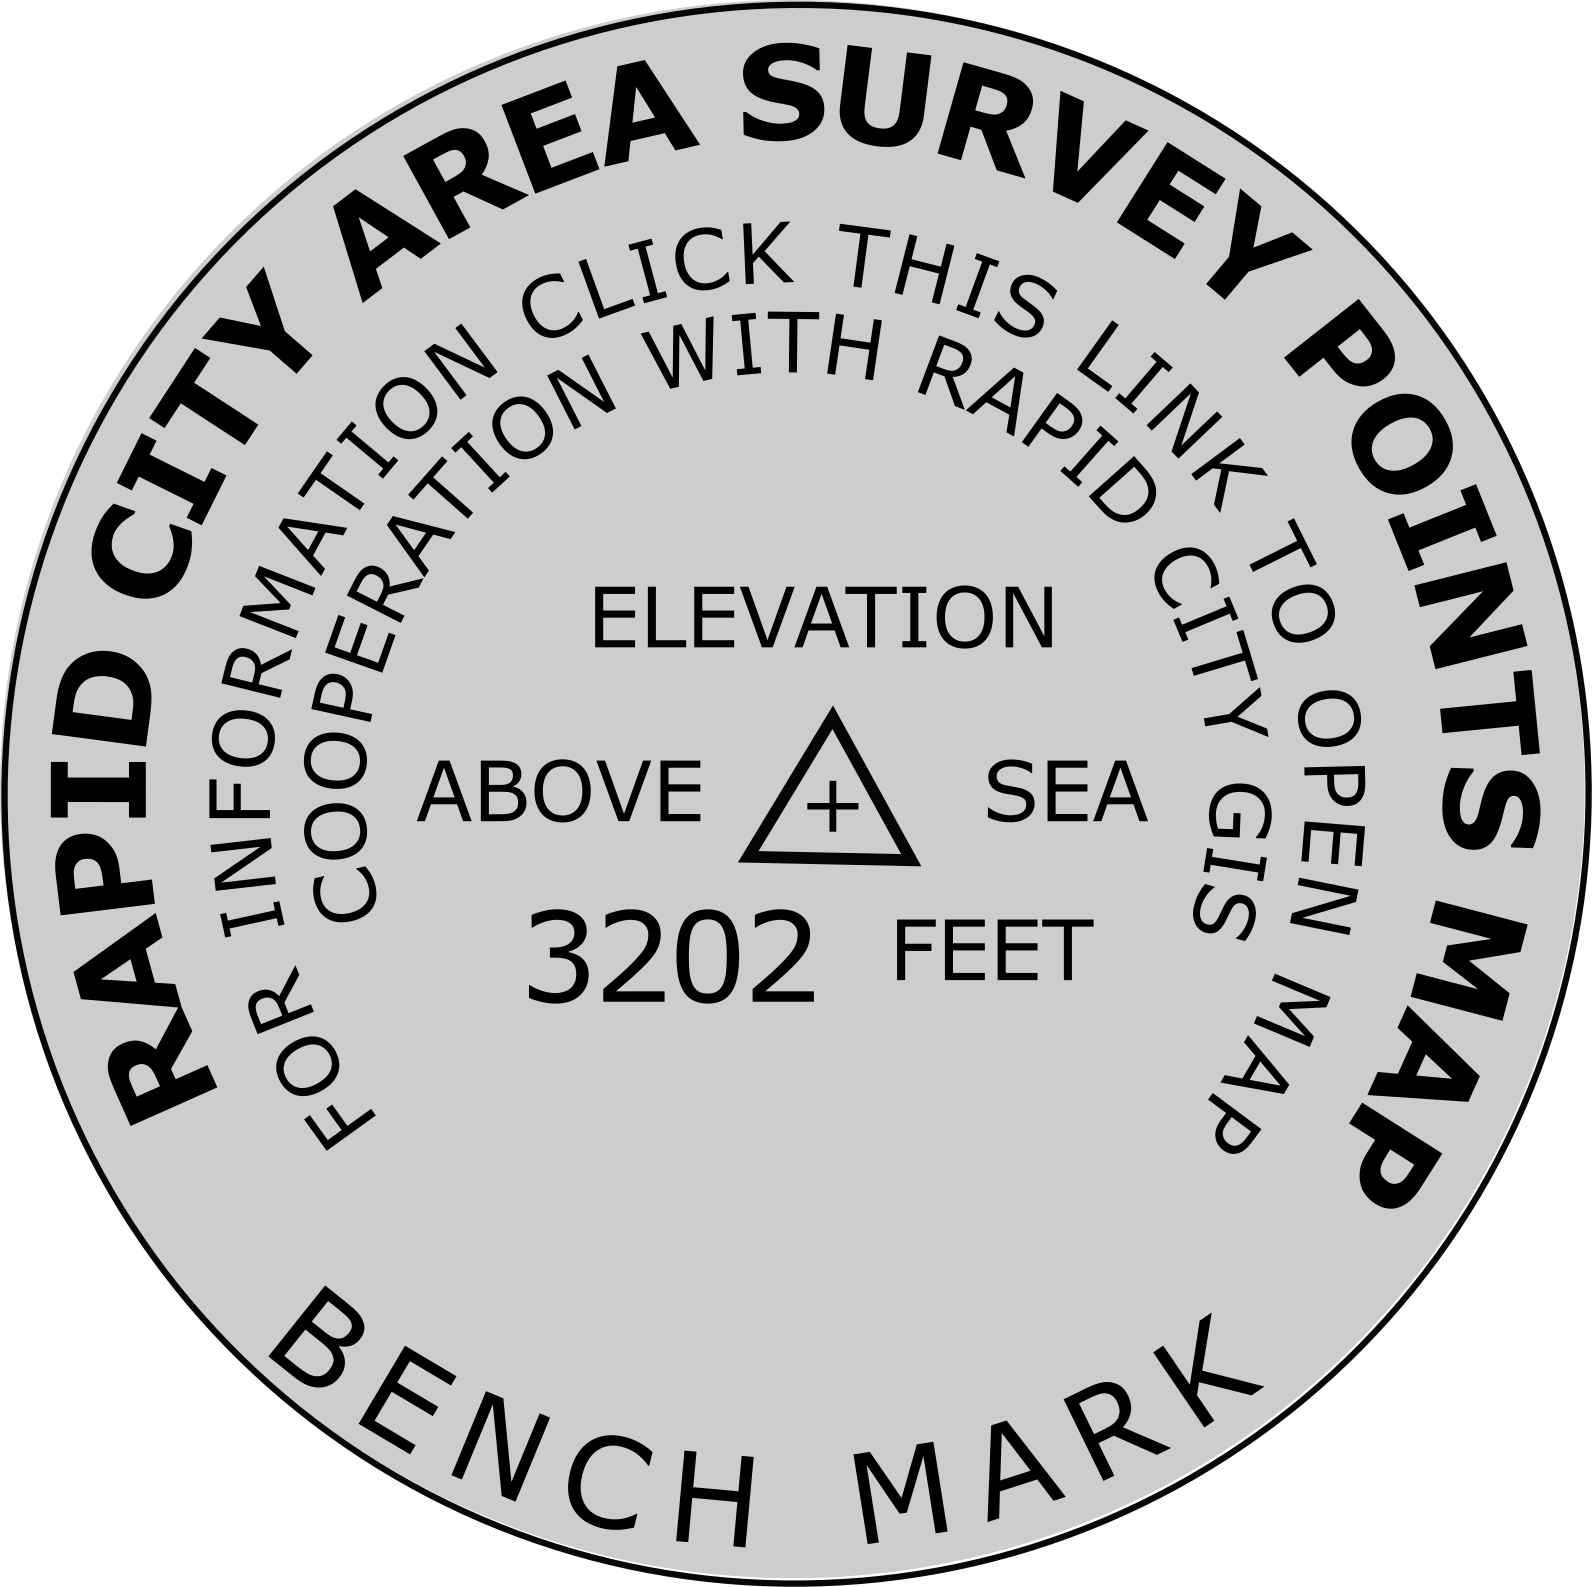 Launch survey points and data grids map application